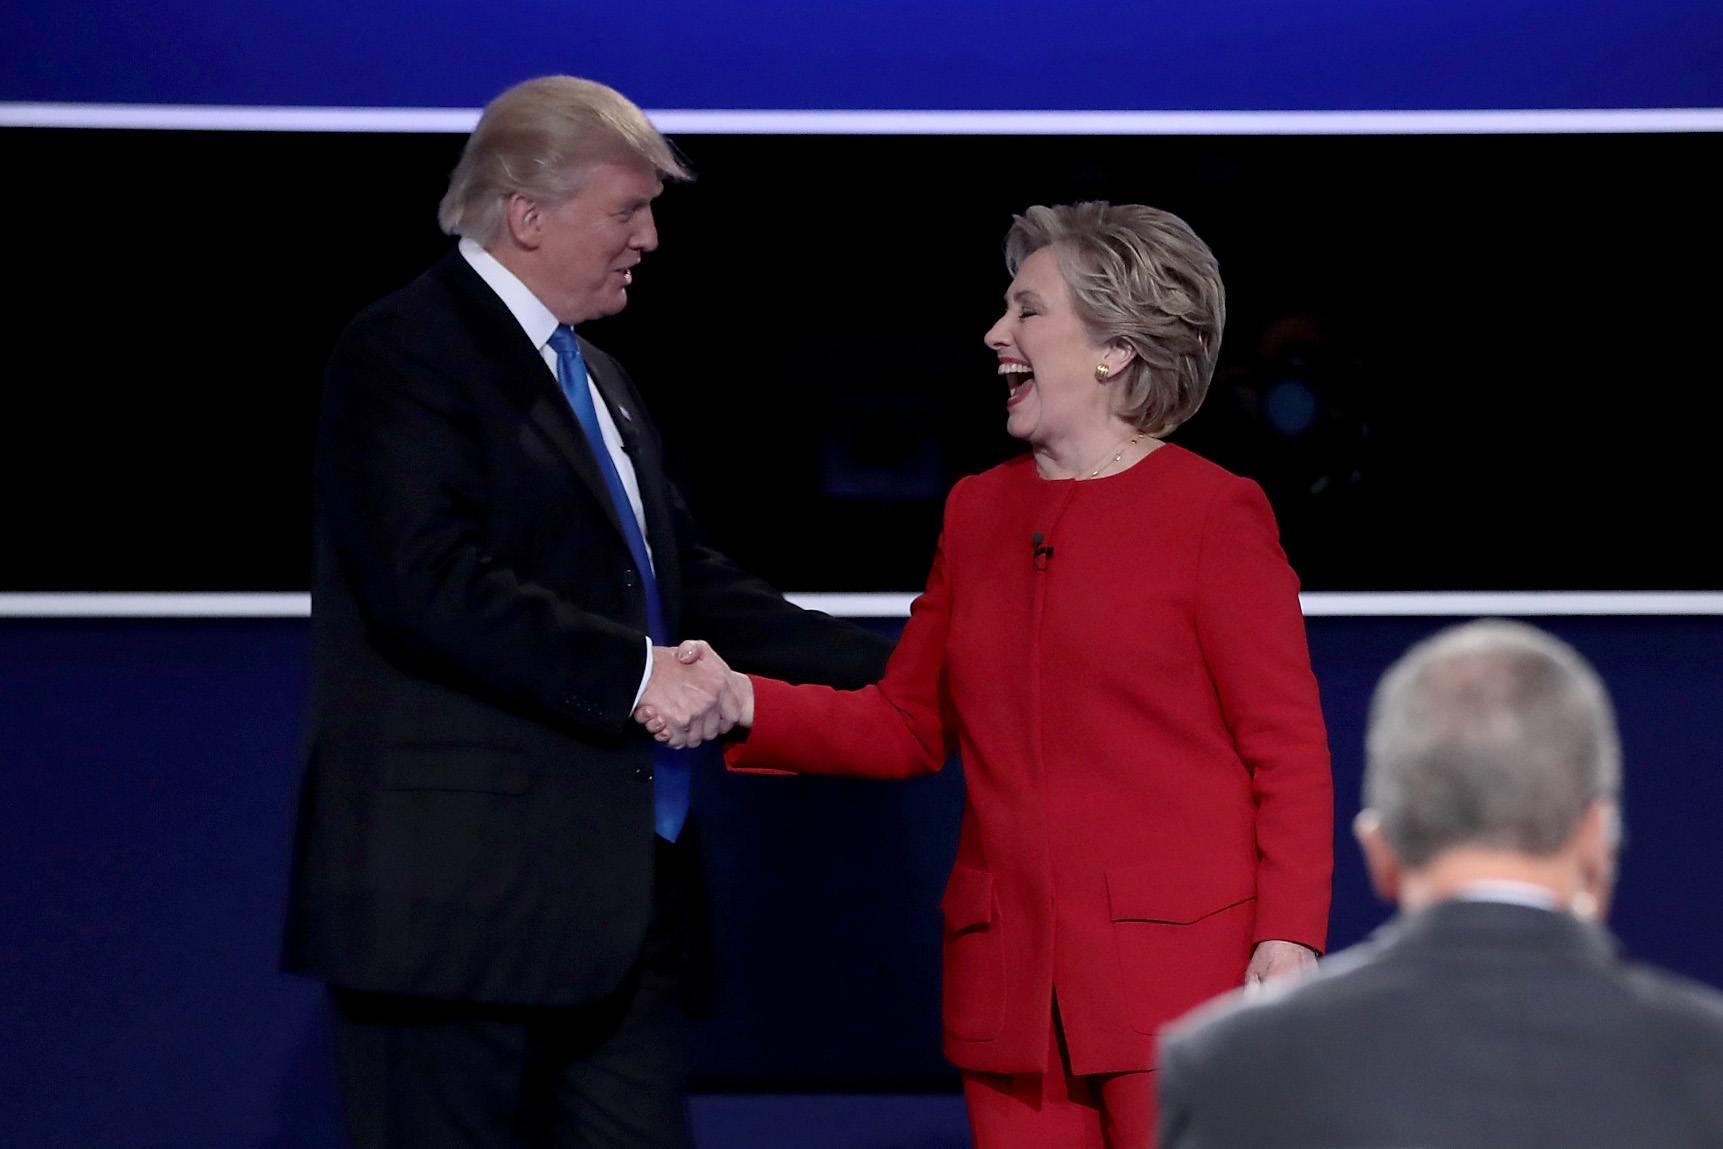 Hillary Clinton and Donald Trump during the bruising US presidential campaign when plenty of barbs were exchanged.